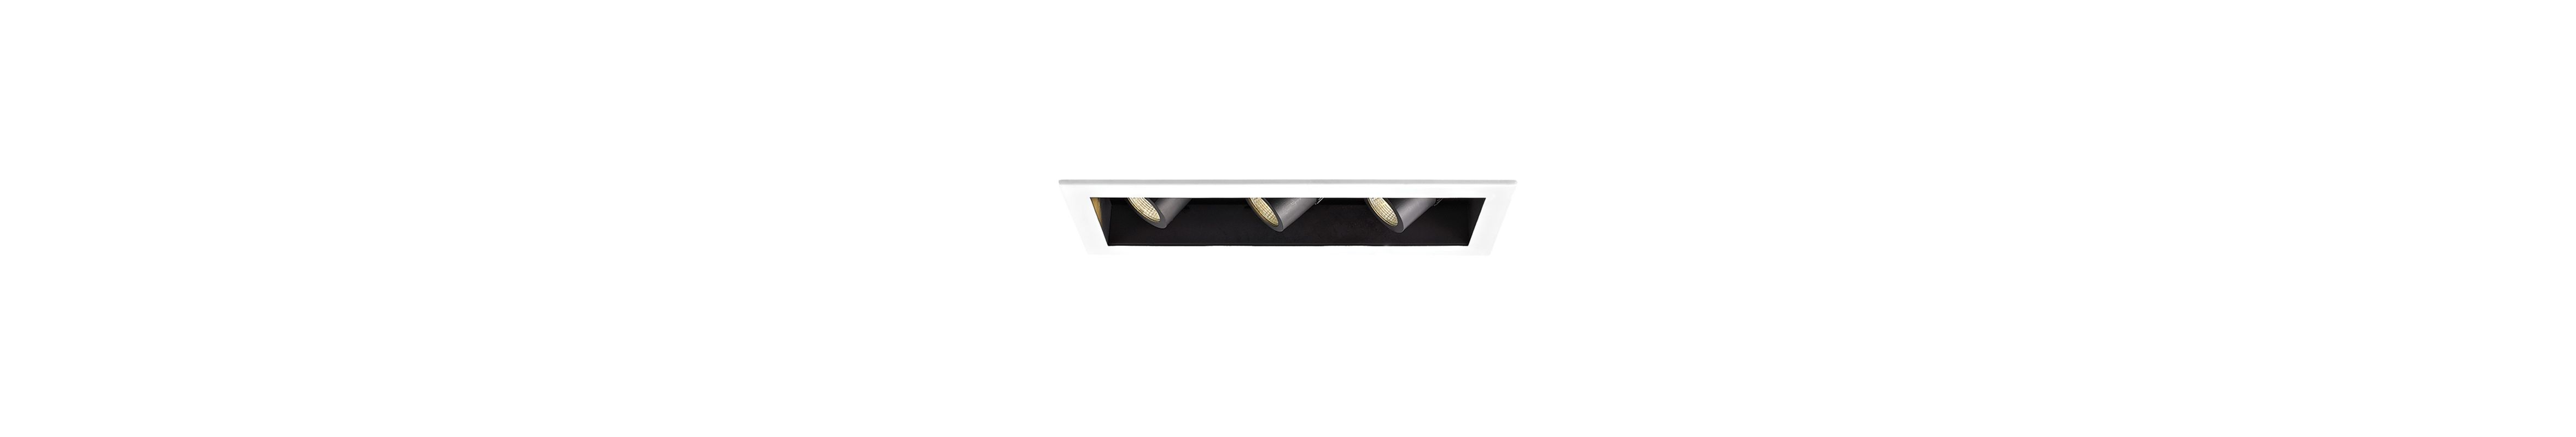 "WAC Lighting MT-4LD316N-F40 4"" Trim 4000K High Output LED Recessed"